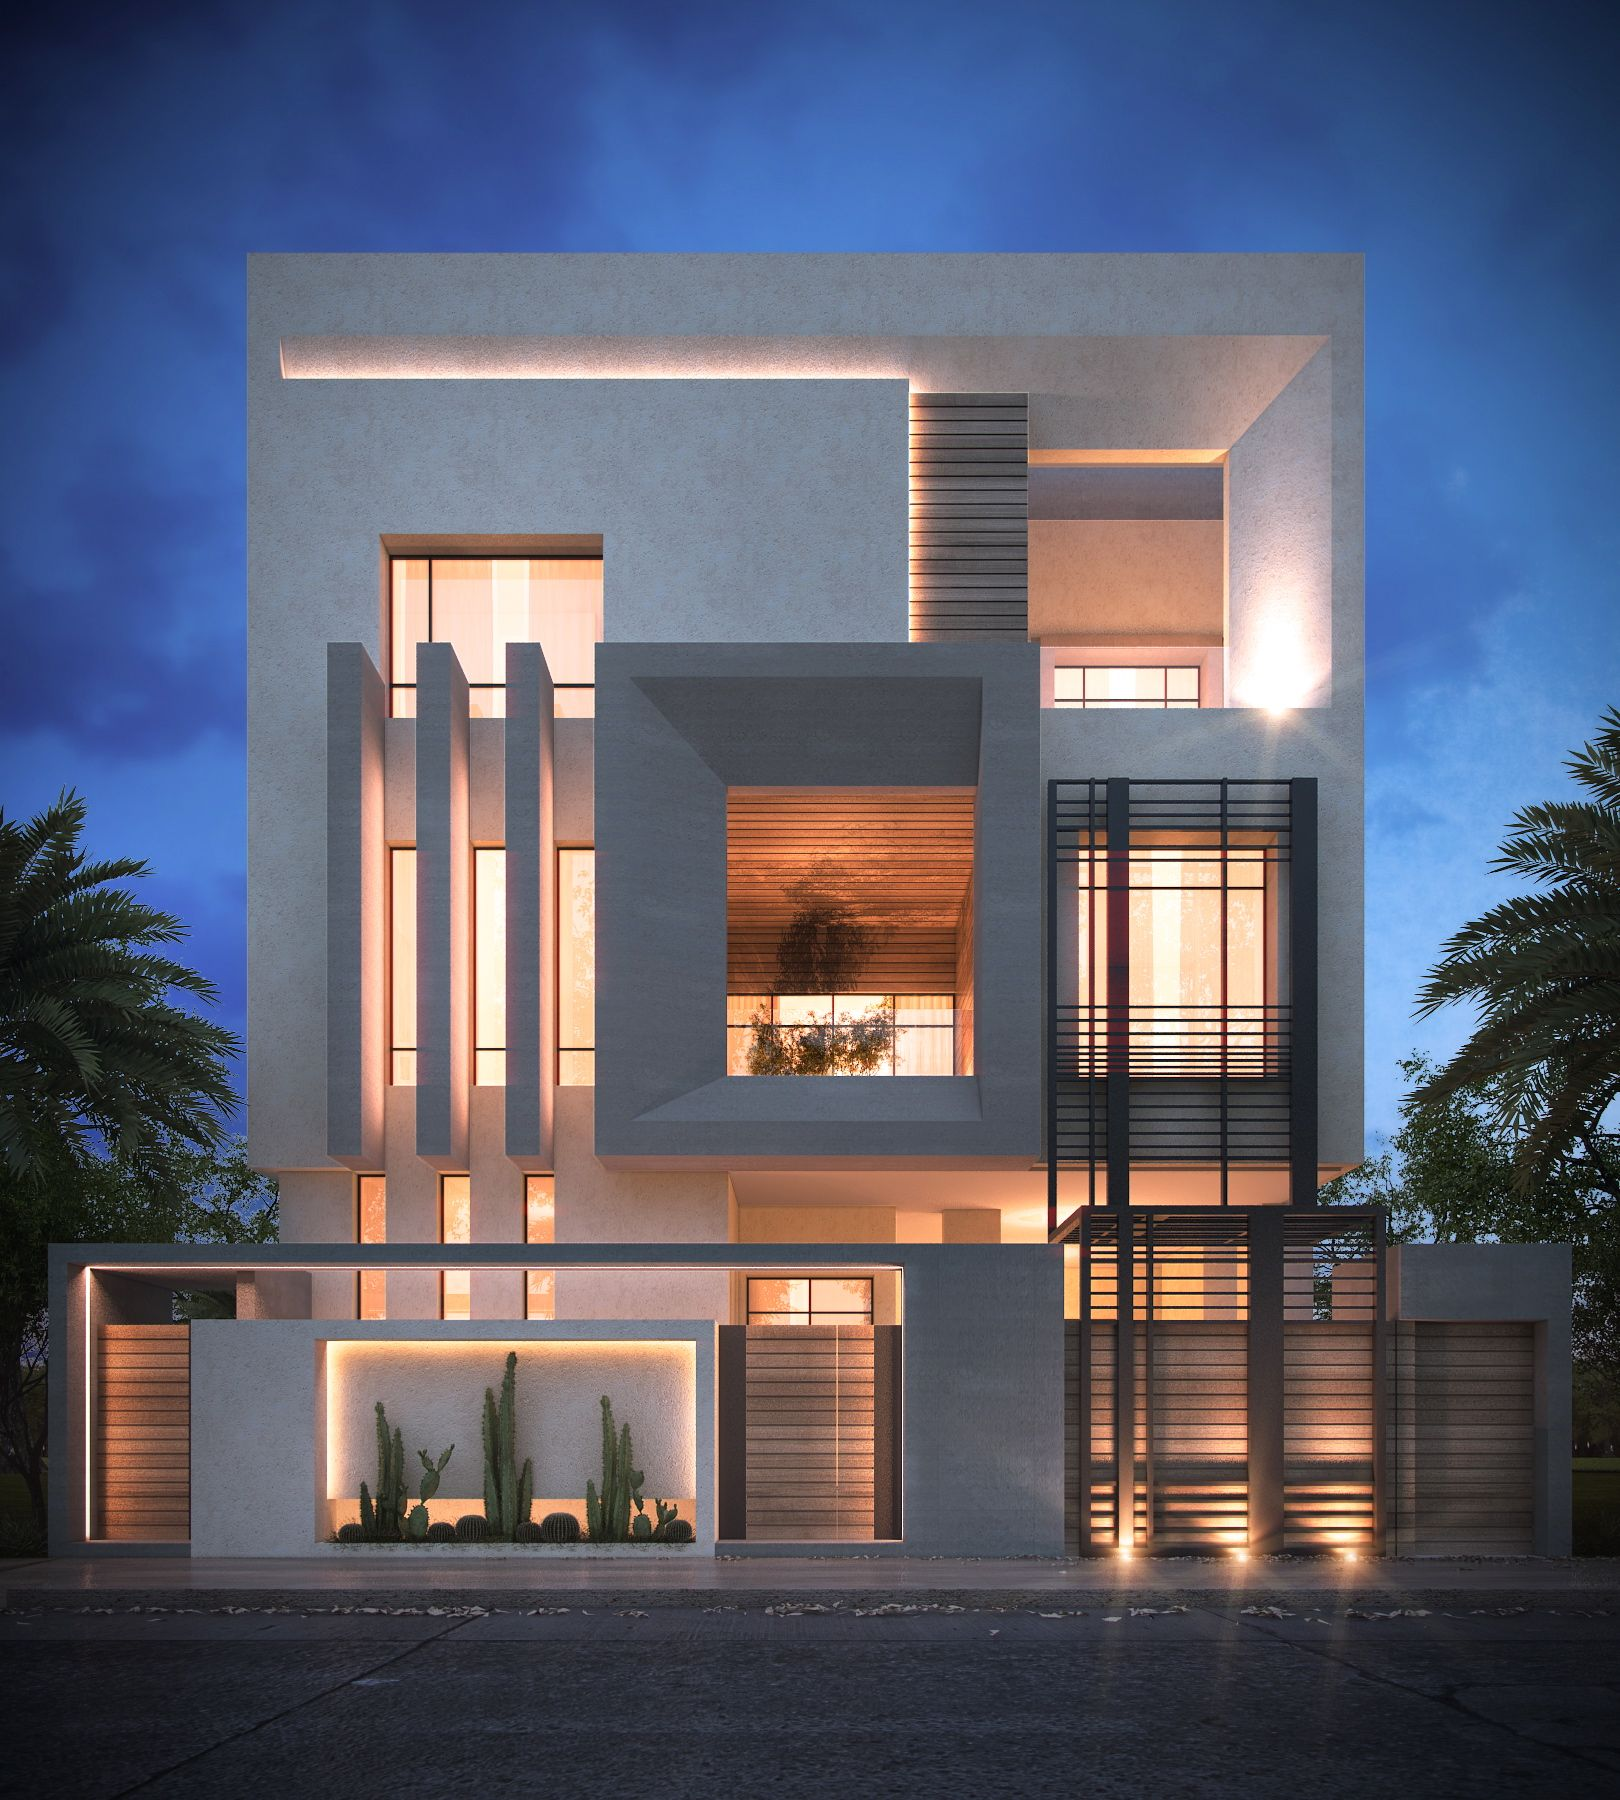 Modern Architecture Home Design: Private Villa / Sarah Sadeq Architects #kuwait